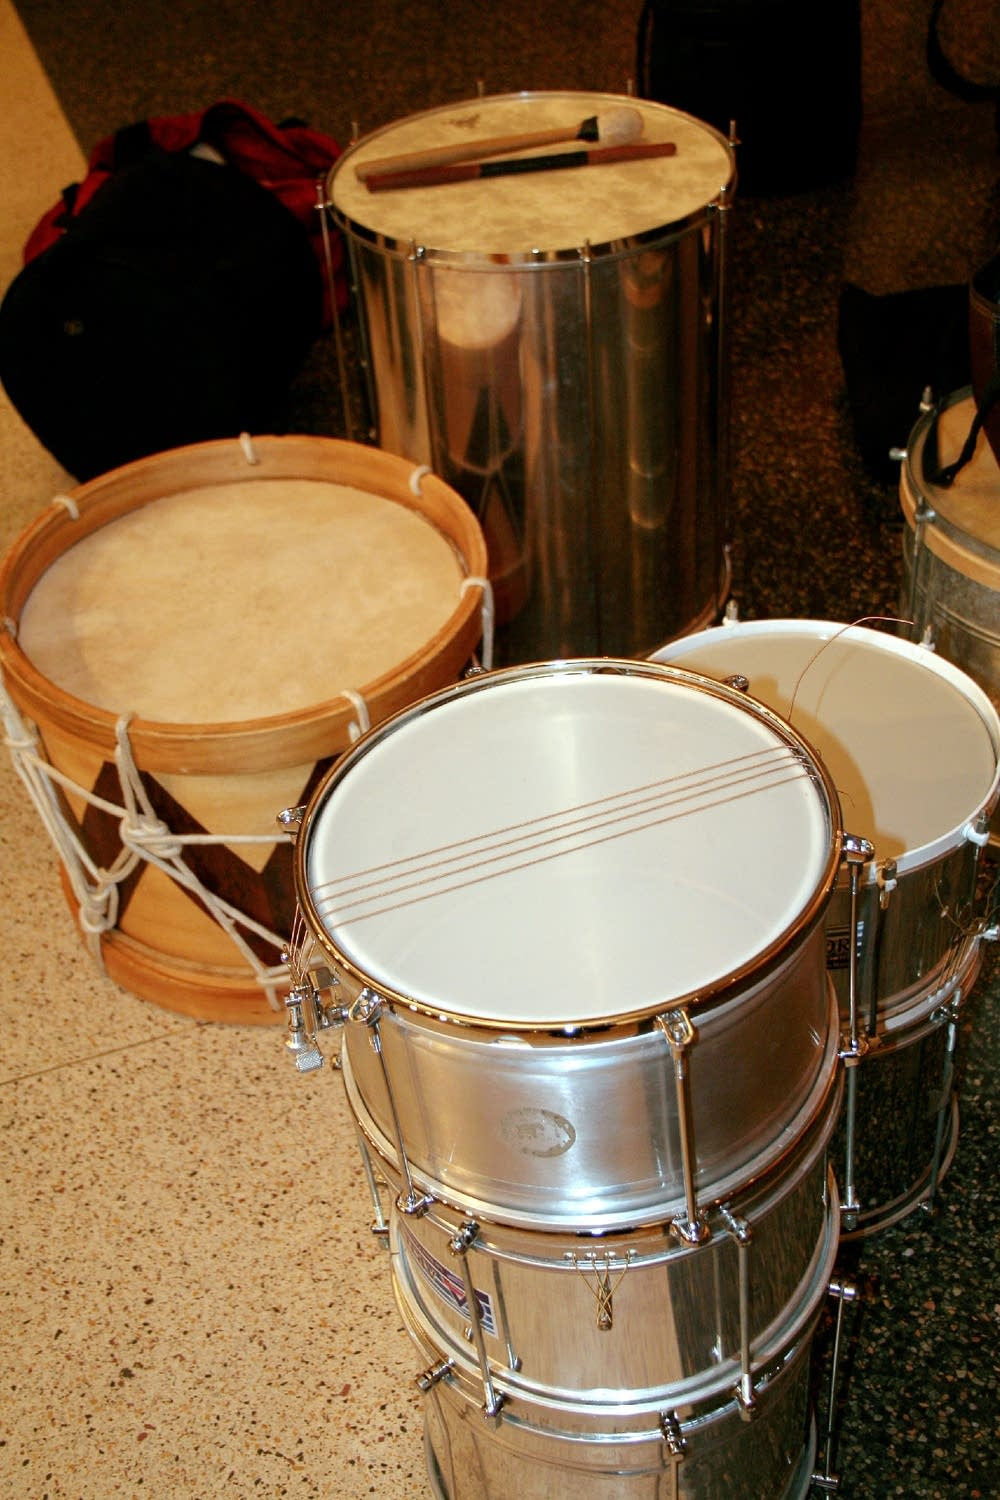 Brazilian drums